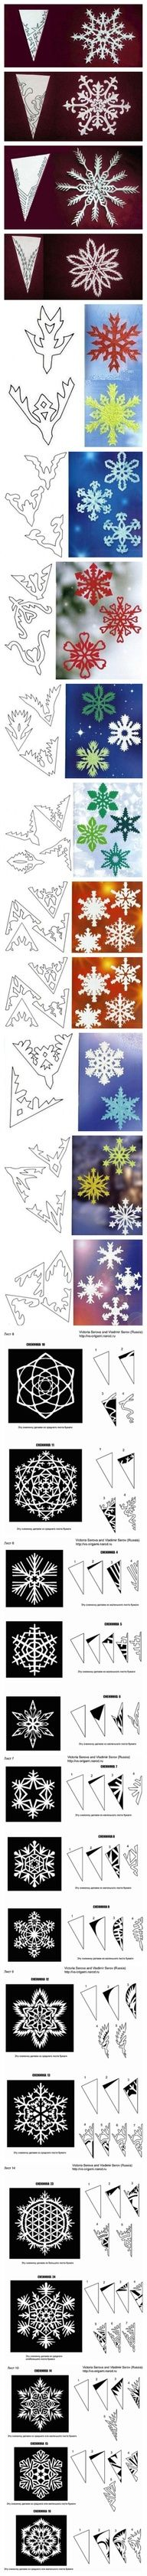 How to Make Excellent Paper Snowflakes by joybx: Beyond the basics!  #DIY #Paper_Snowflakes #joybx awesome